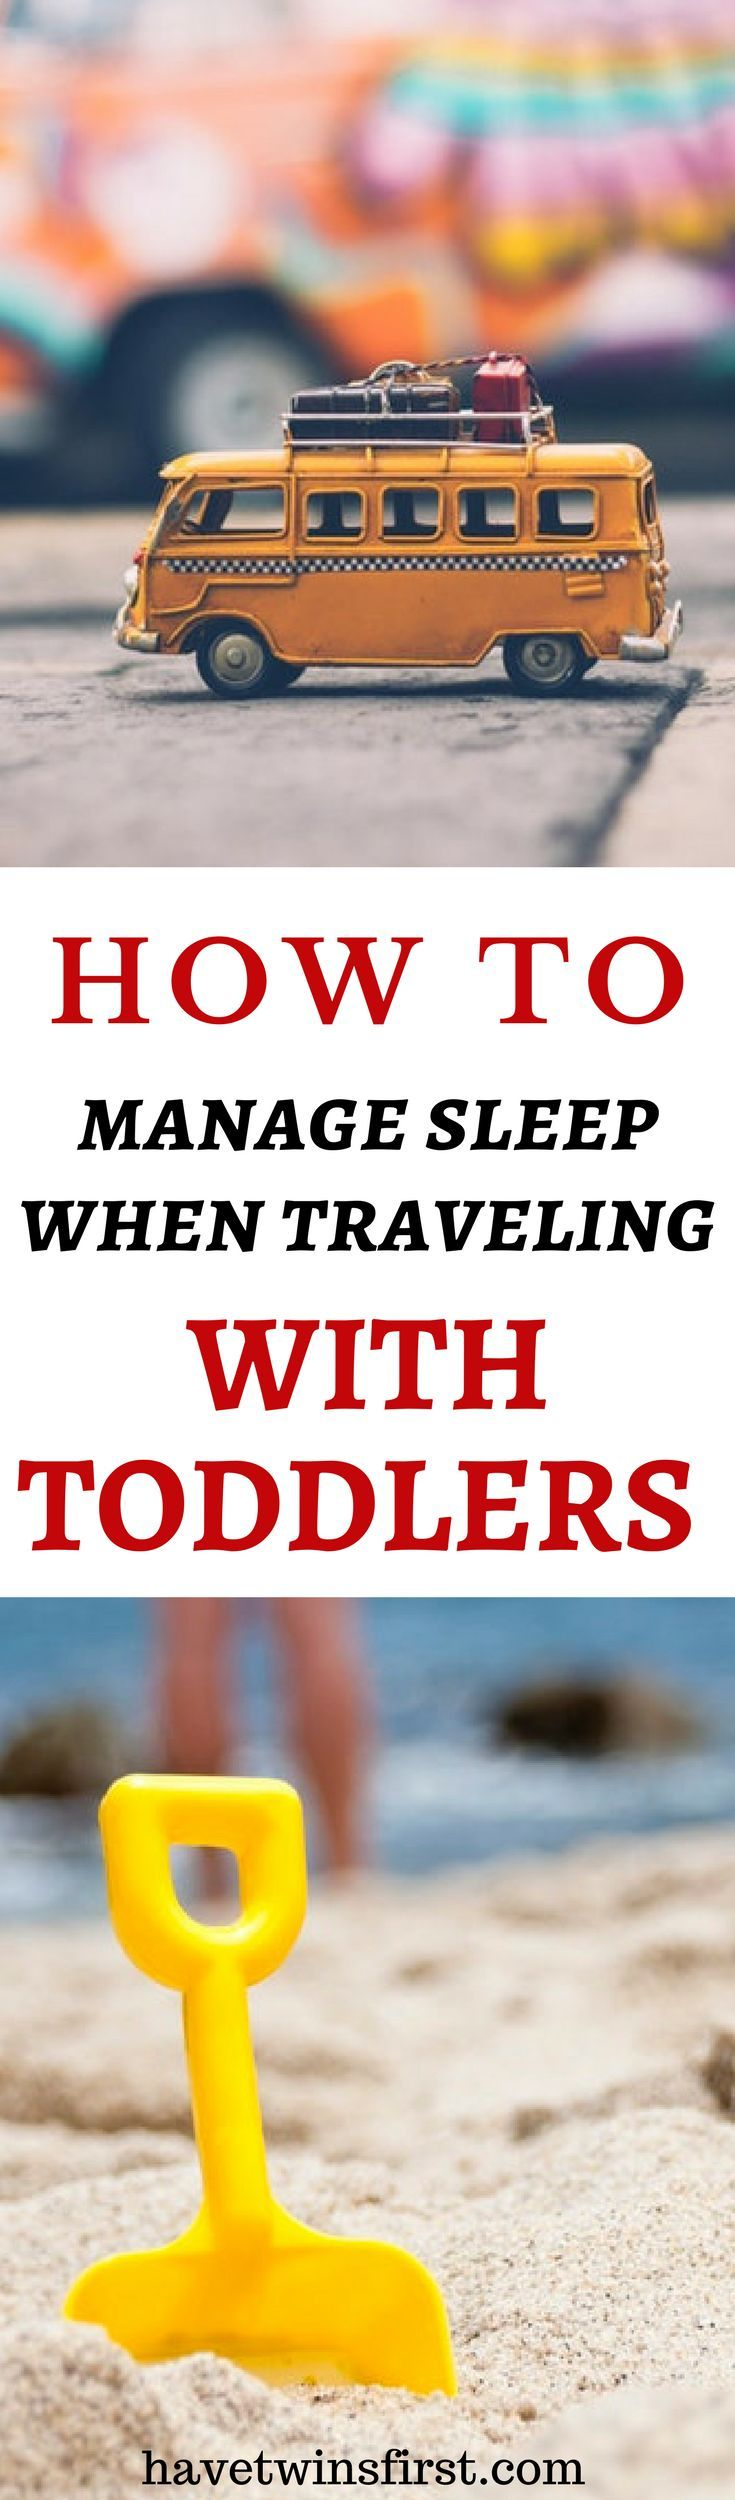 8 tips to manage sleeping arrangements when traveling with toddlers.